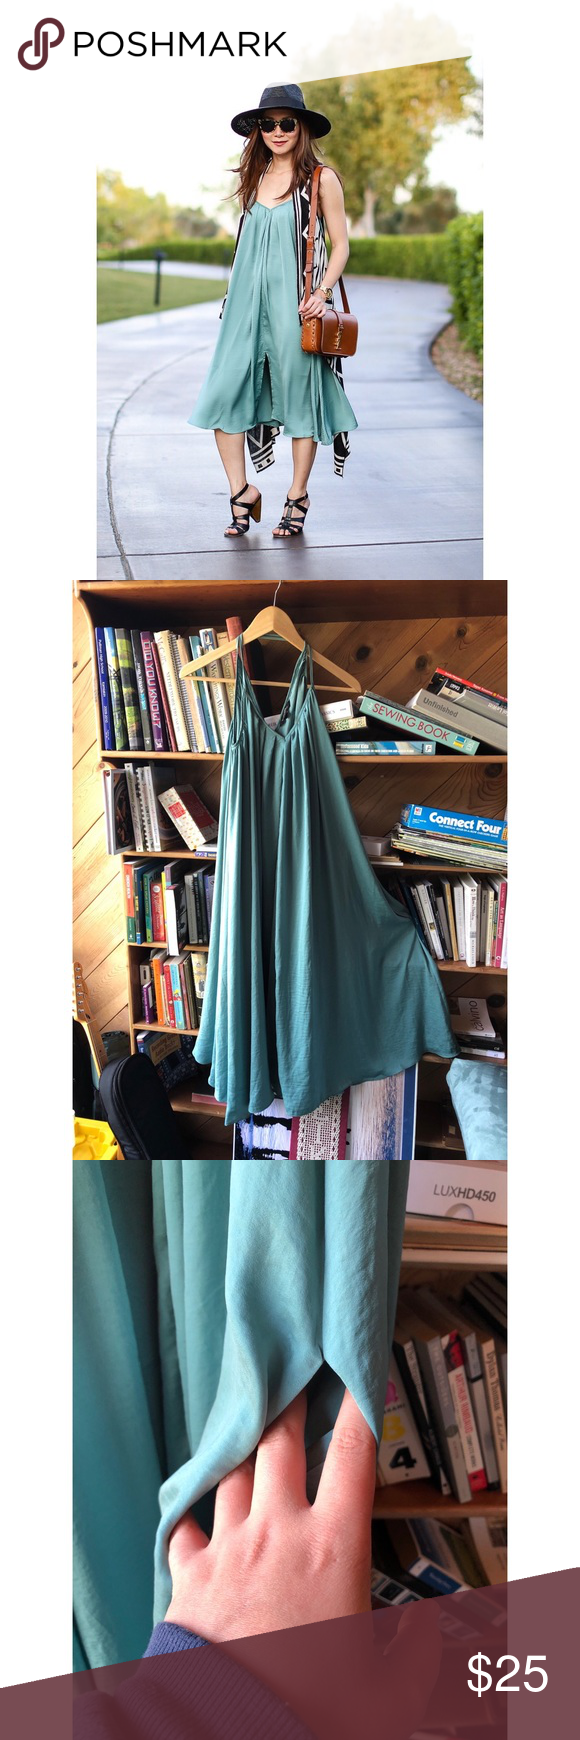 Banana Republic Teal Dress Banana Republic Teal Dress – Small Deze jurk is zo …